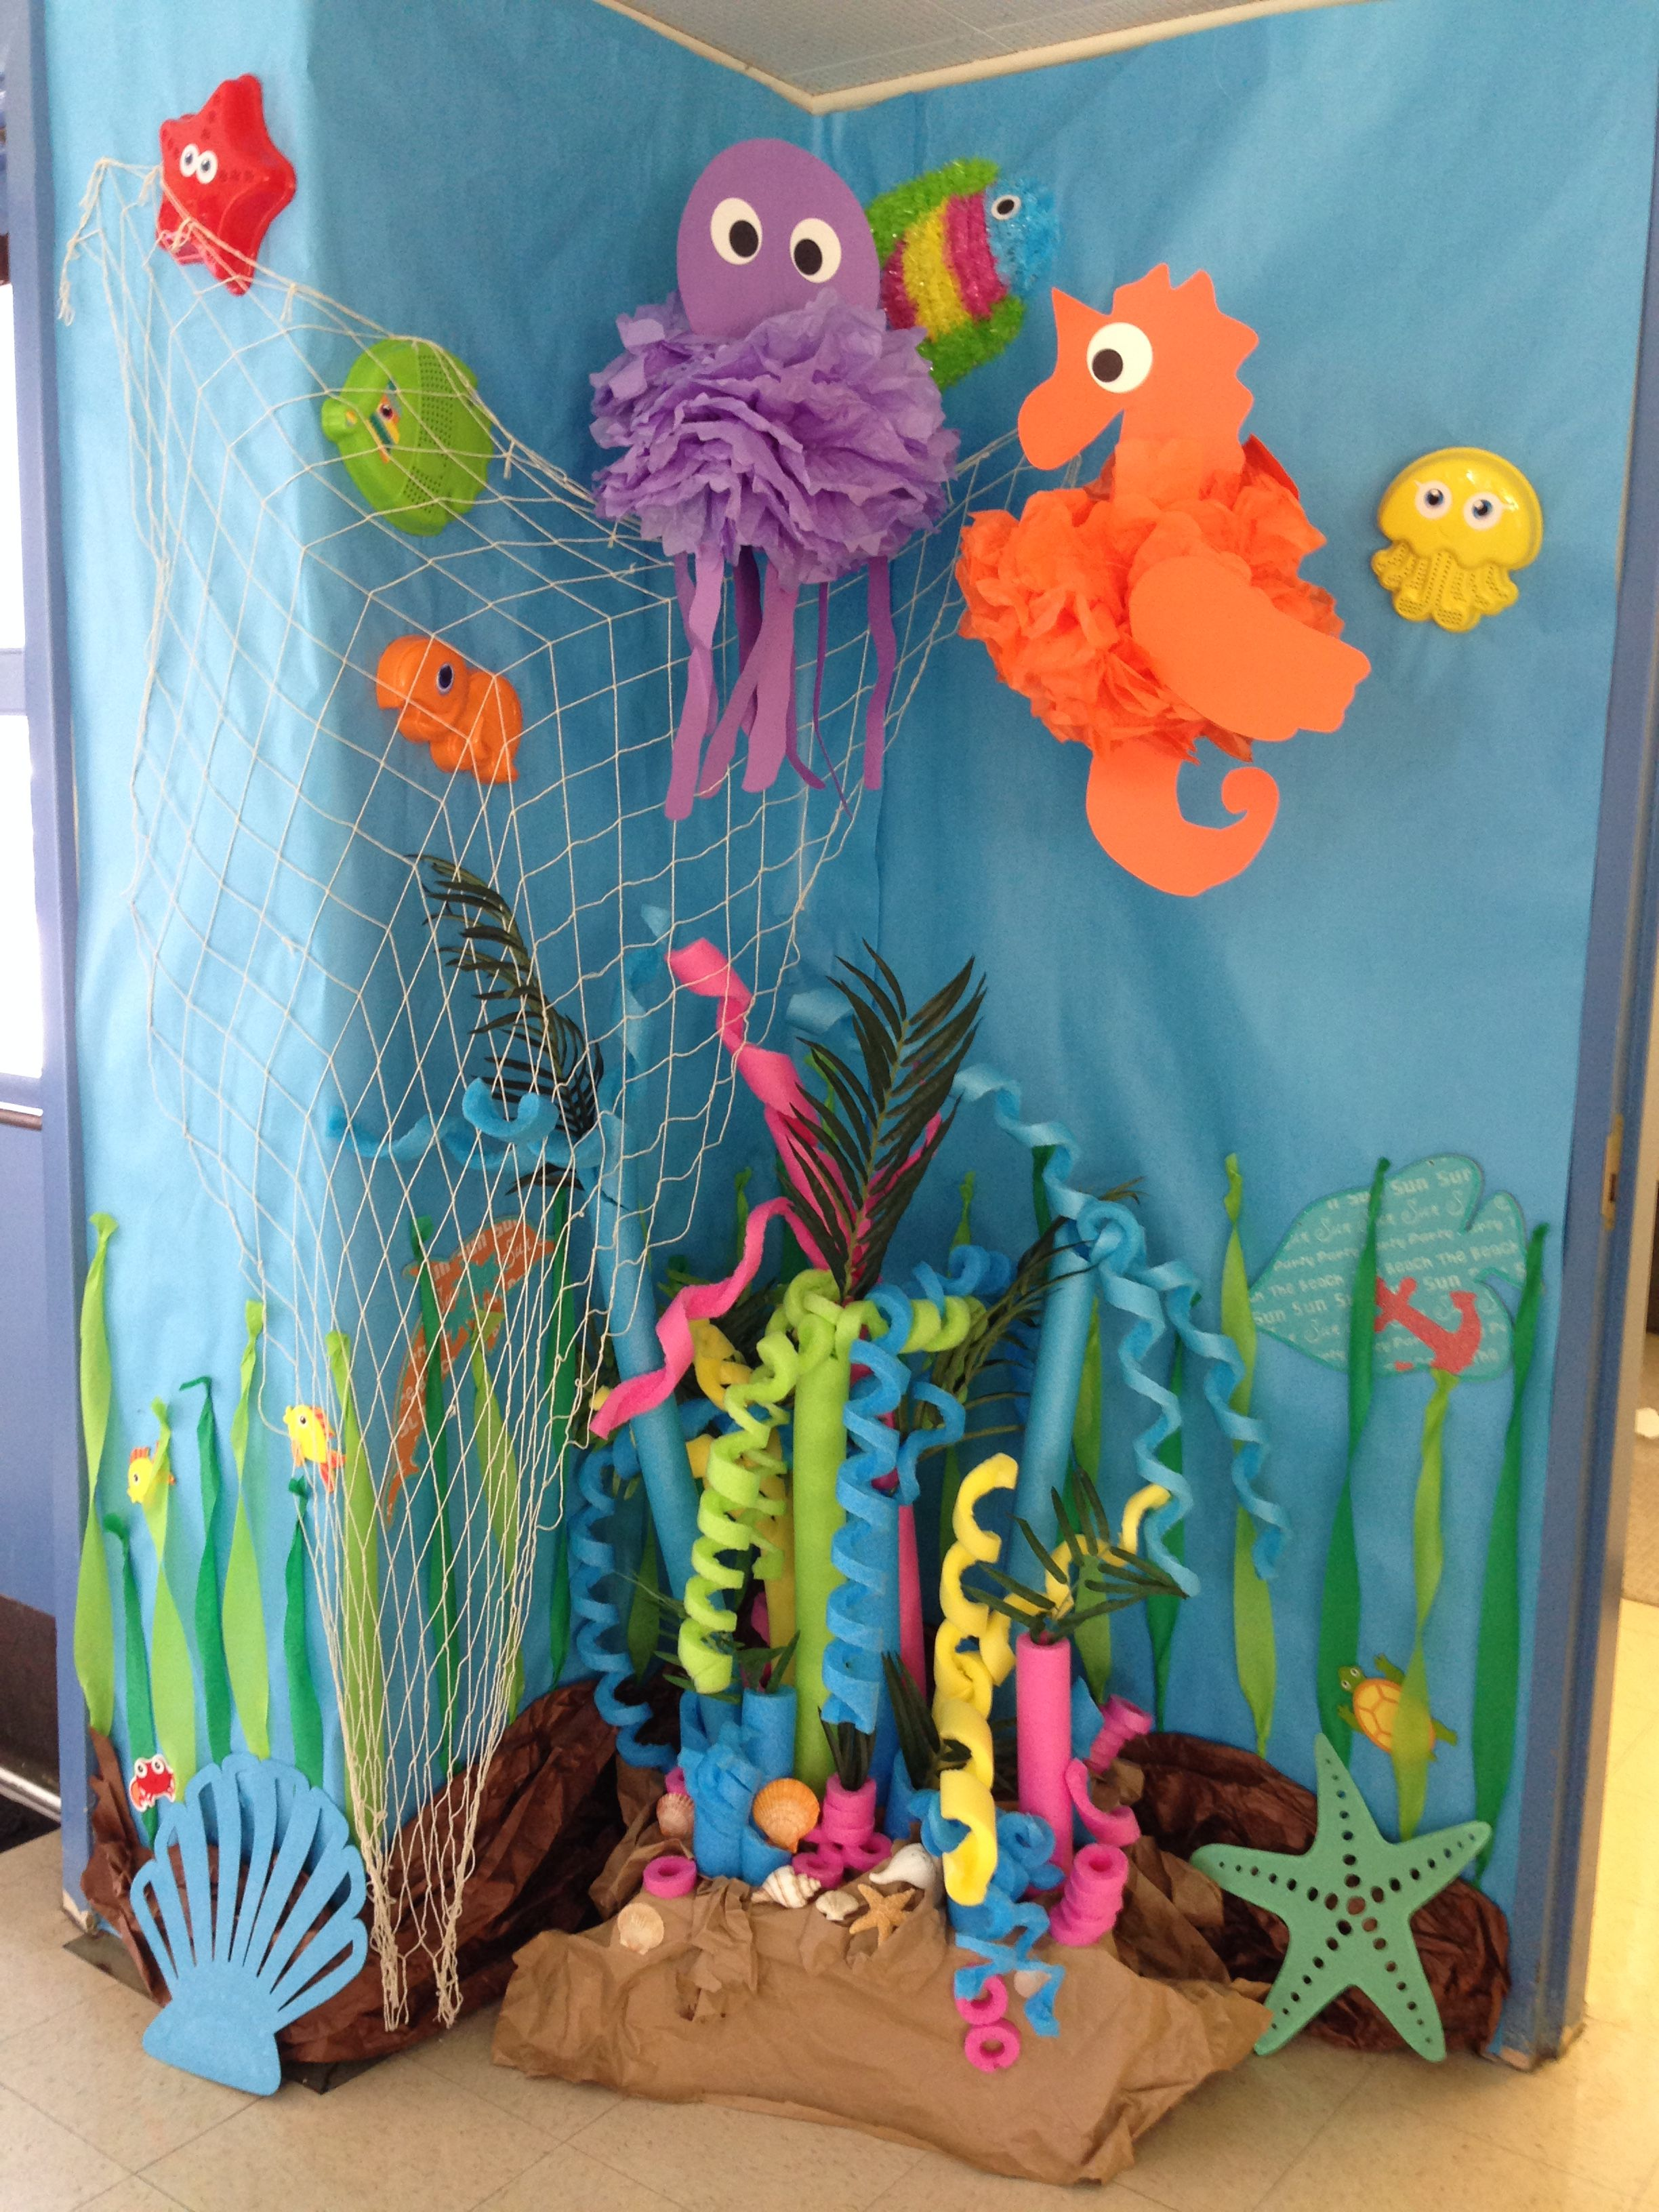 Under the sea decorations ideas, pool noodle coral reef ...